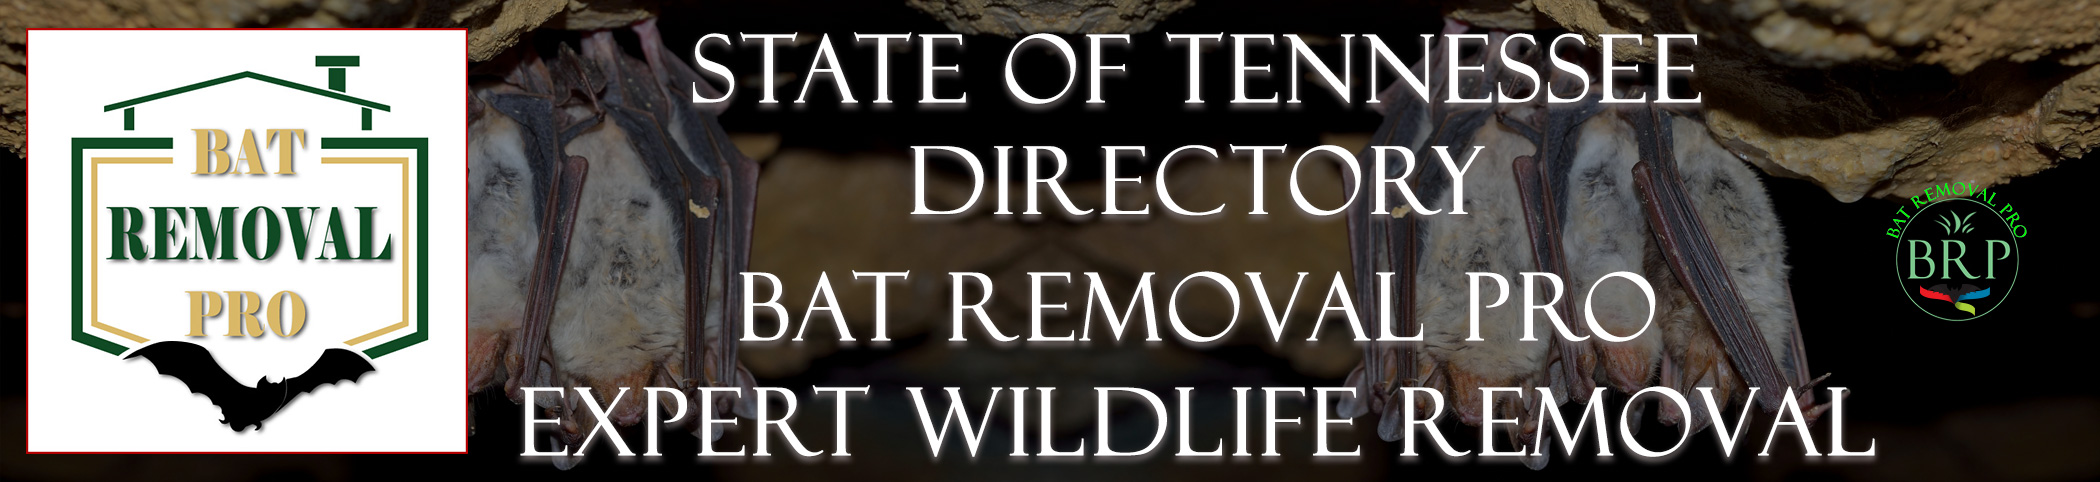 tennessee-bat-removal-at-bat-removal-pro-header-image